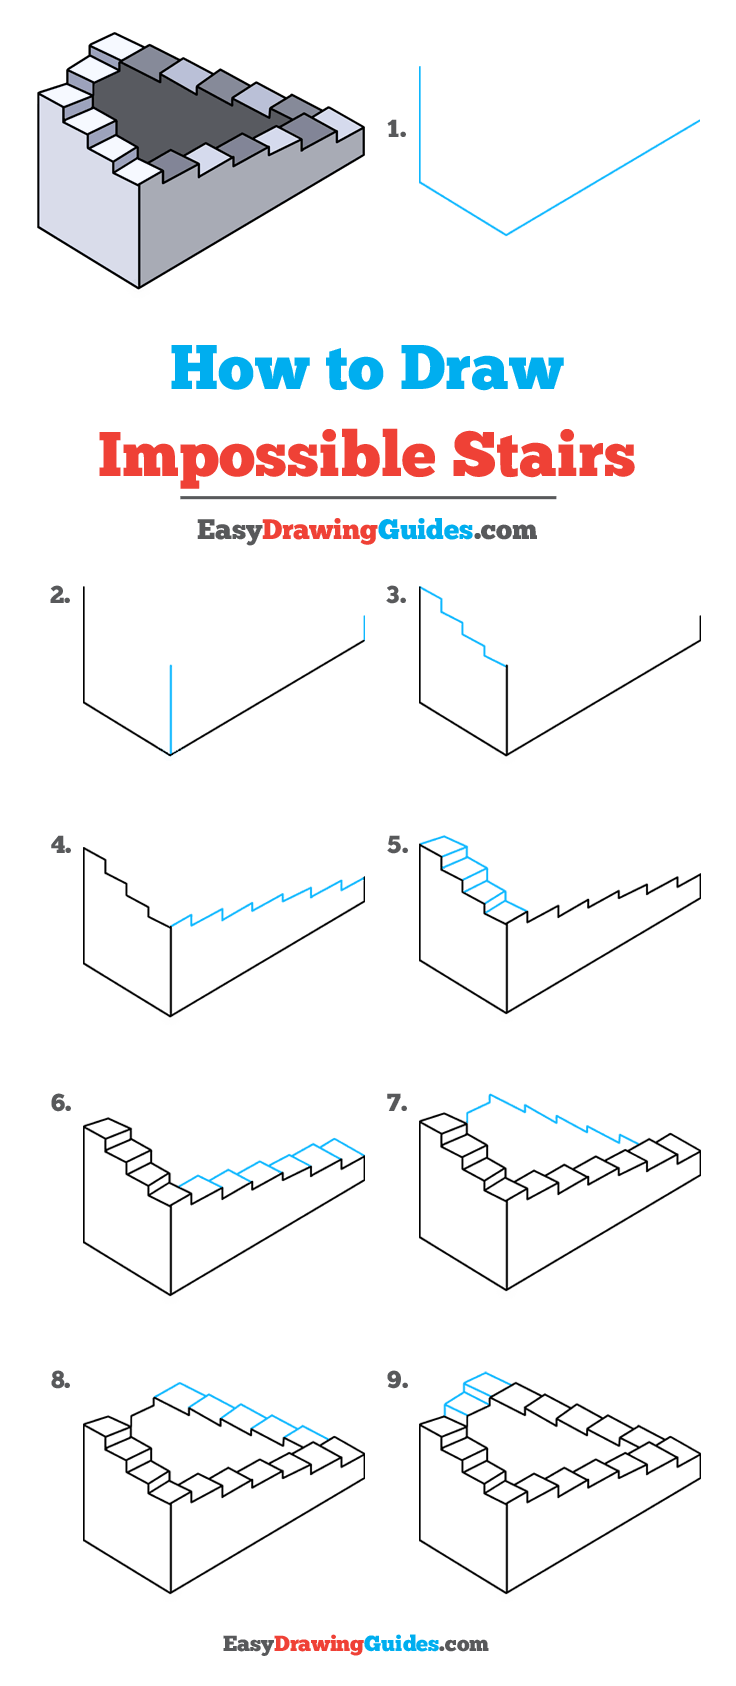 How to Draw Impossible Stairs